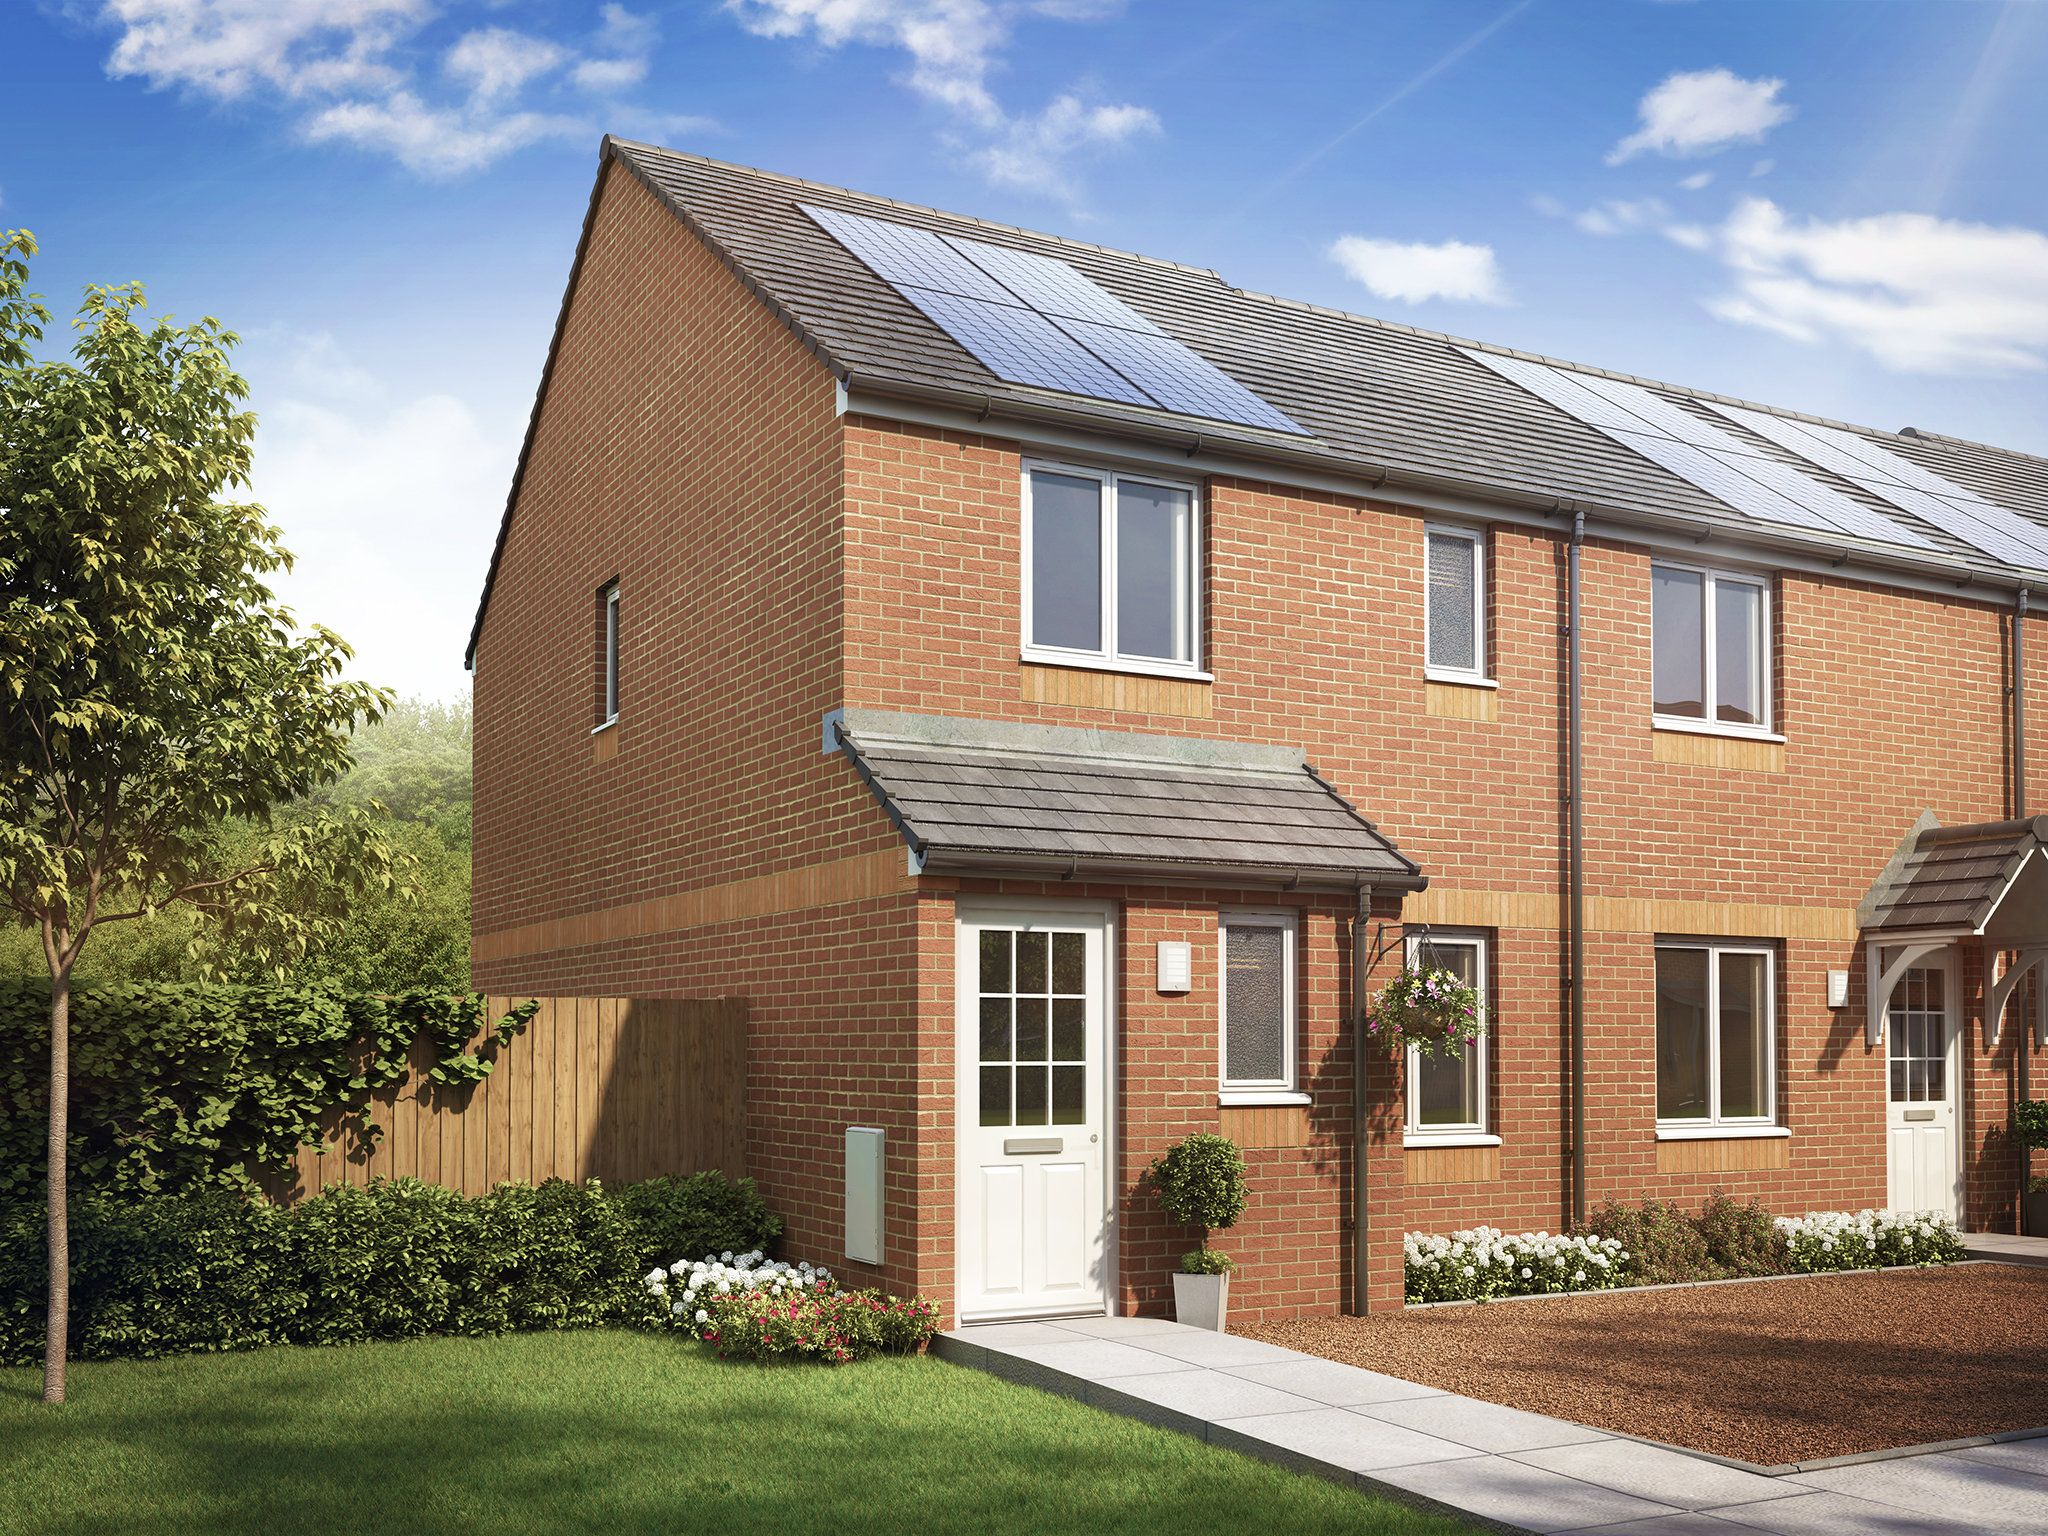 The Willows development image 1 of 1